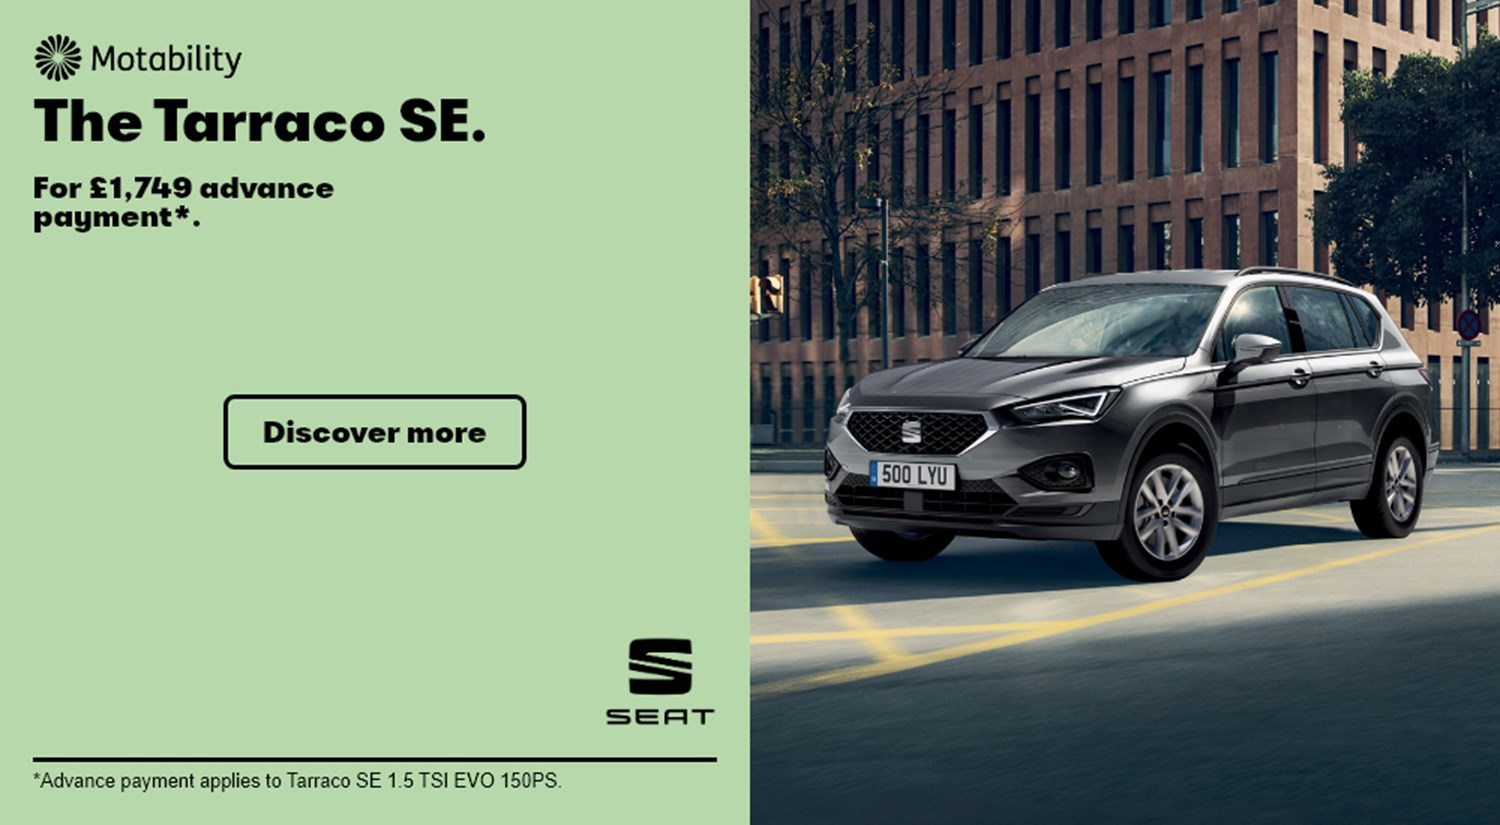 Grey SEAT Tarraco SE parked on road Motability banner